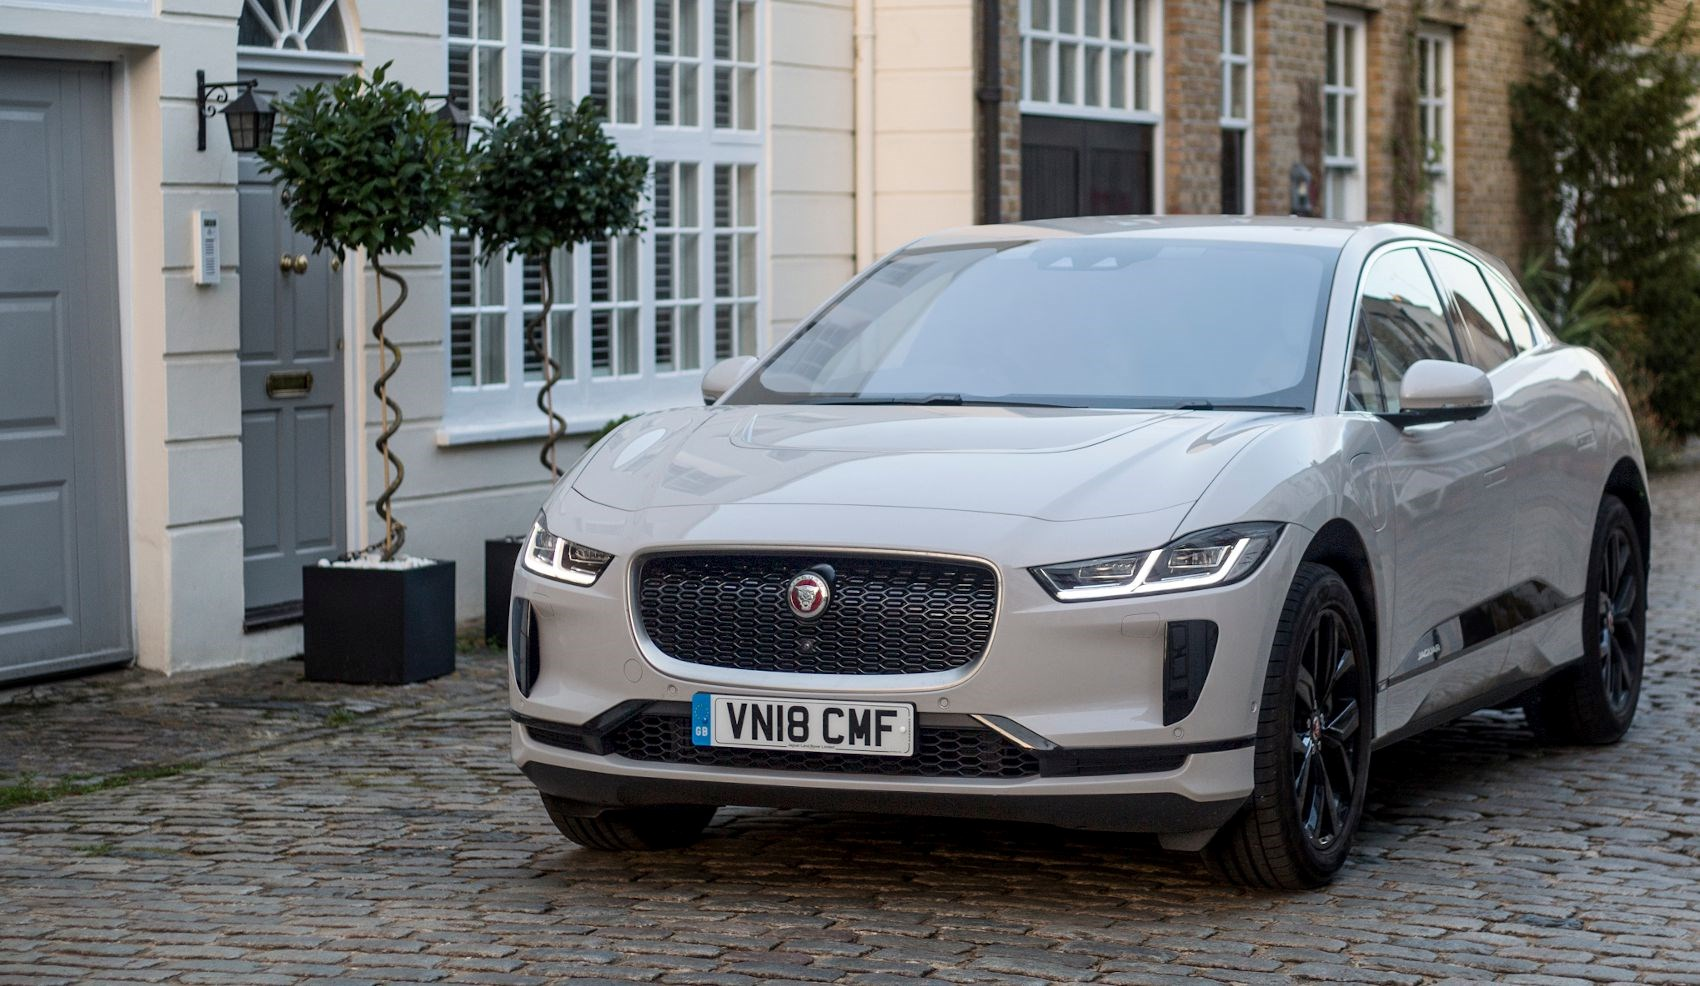 Best electric cars 2019 UK: our pick of the top EVs on sale